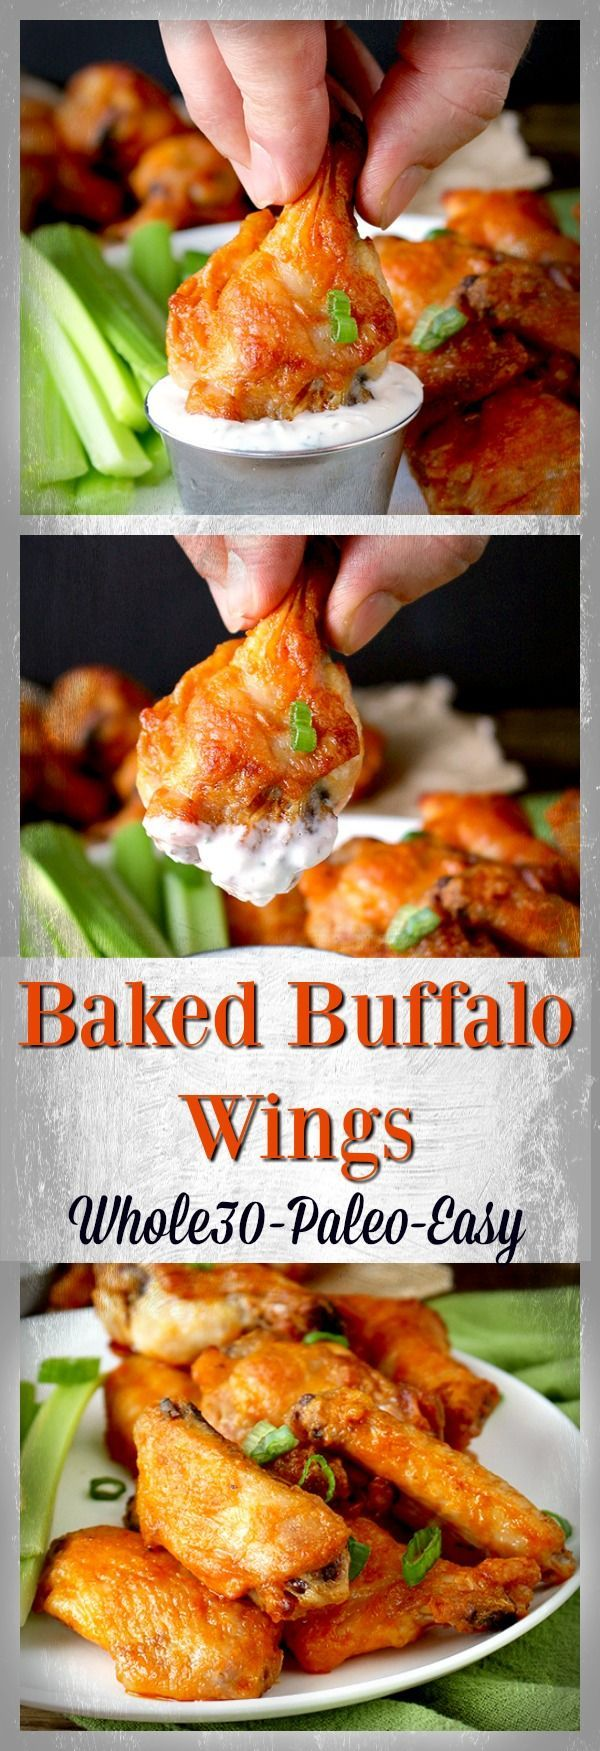 Baked Buffalo Wings | Recipe | Baked Buffalo Wings, Buffalo and ...